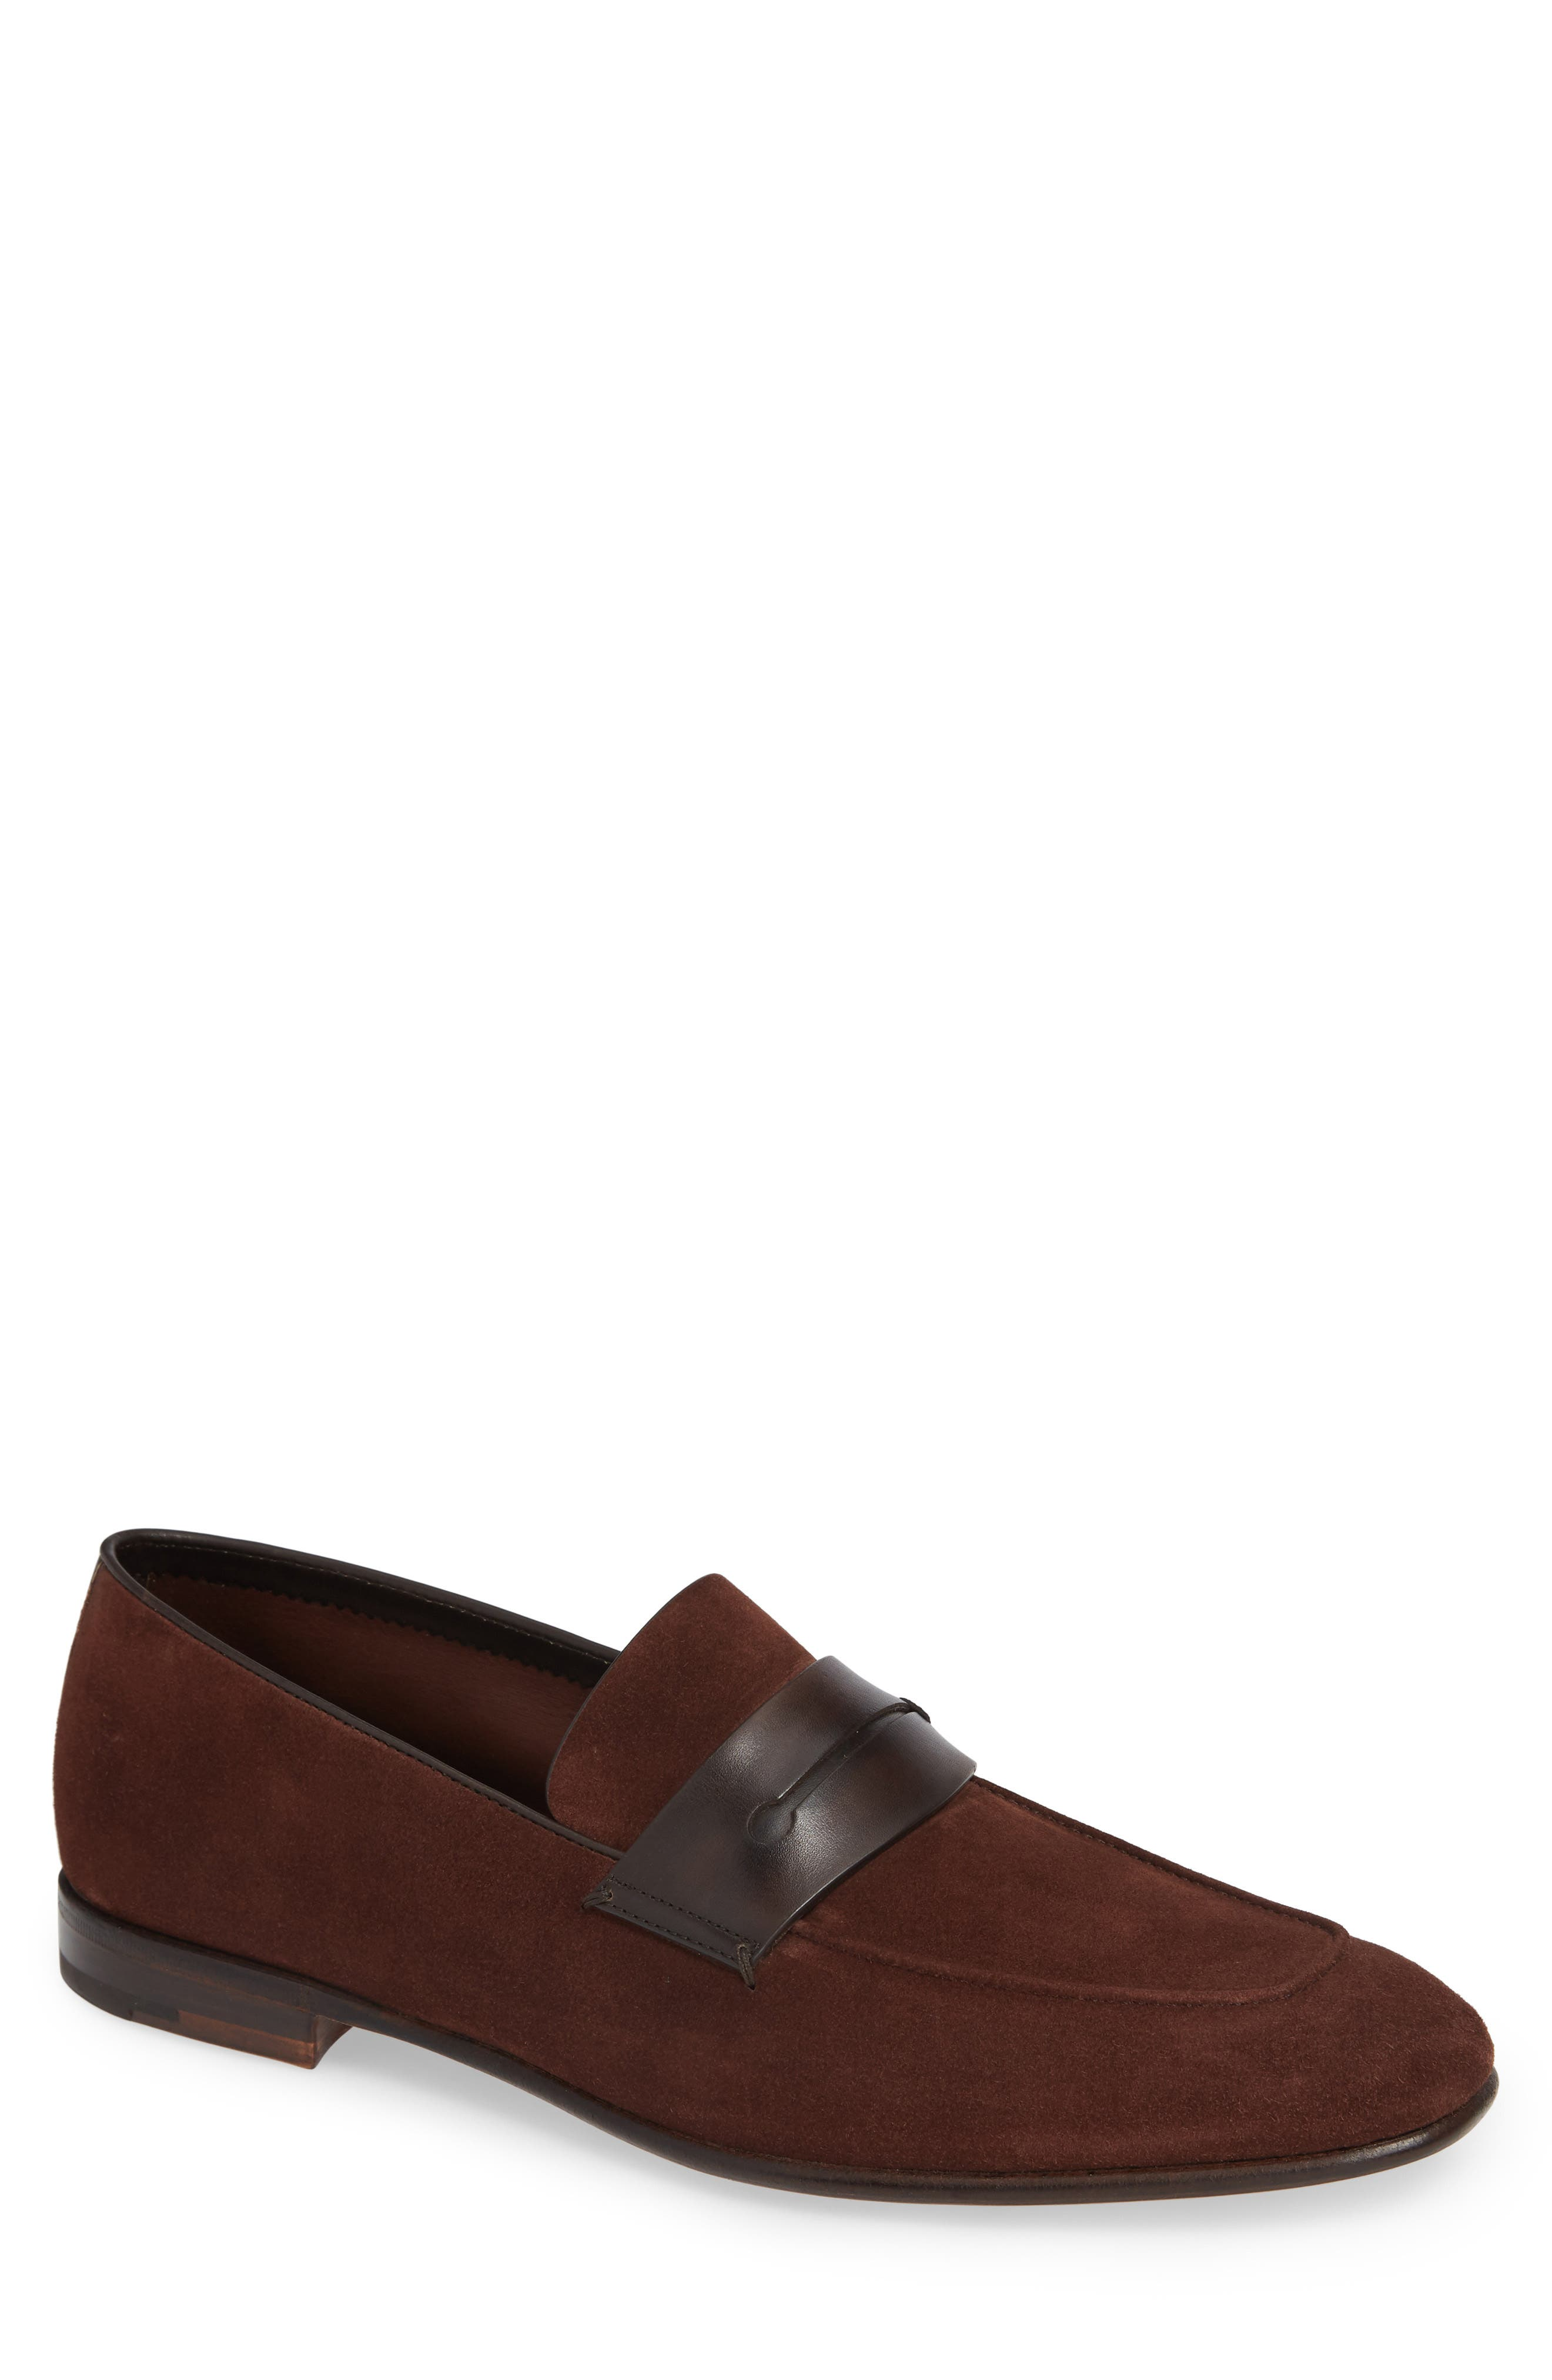 Penny Loafer,                             Main thumbnail 1, color,                             BROWN